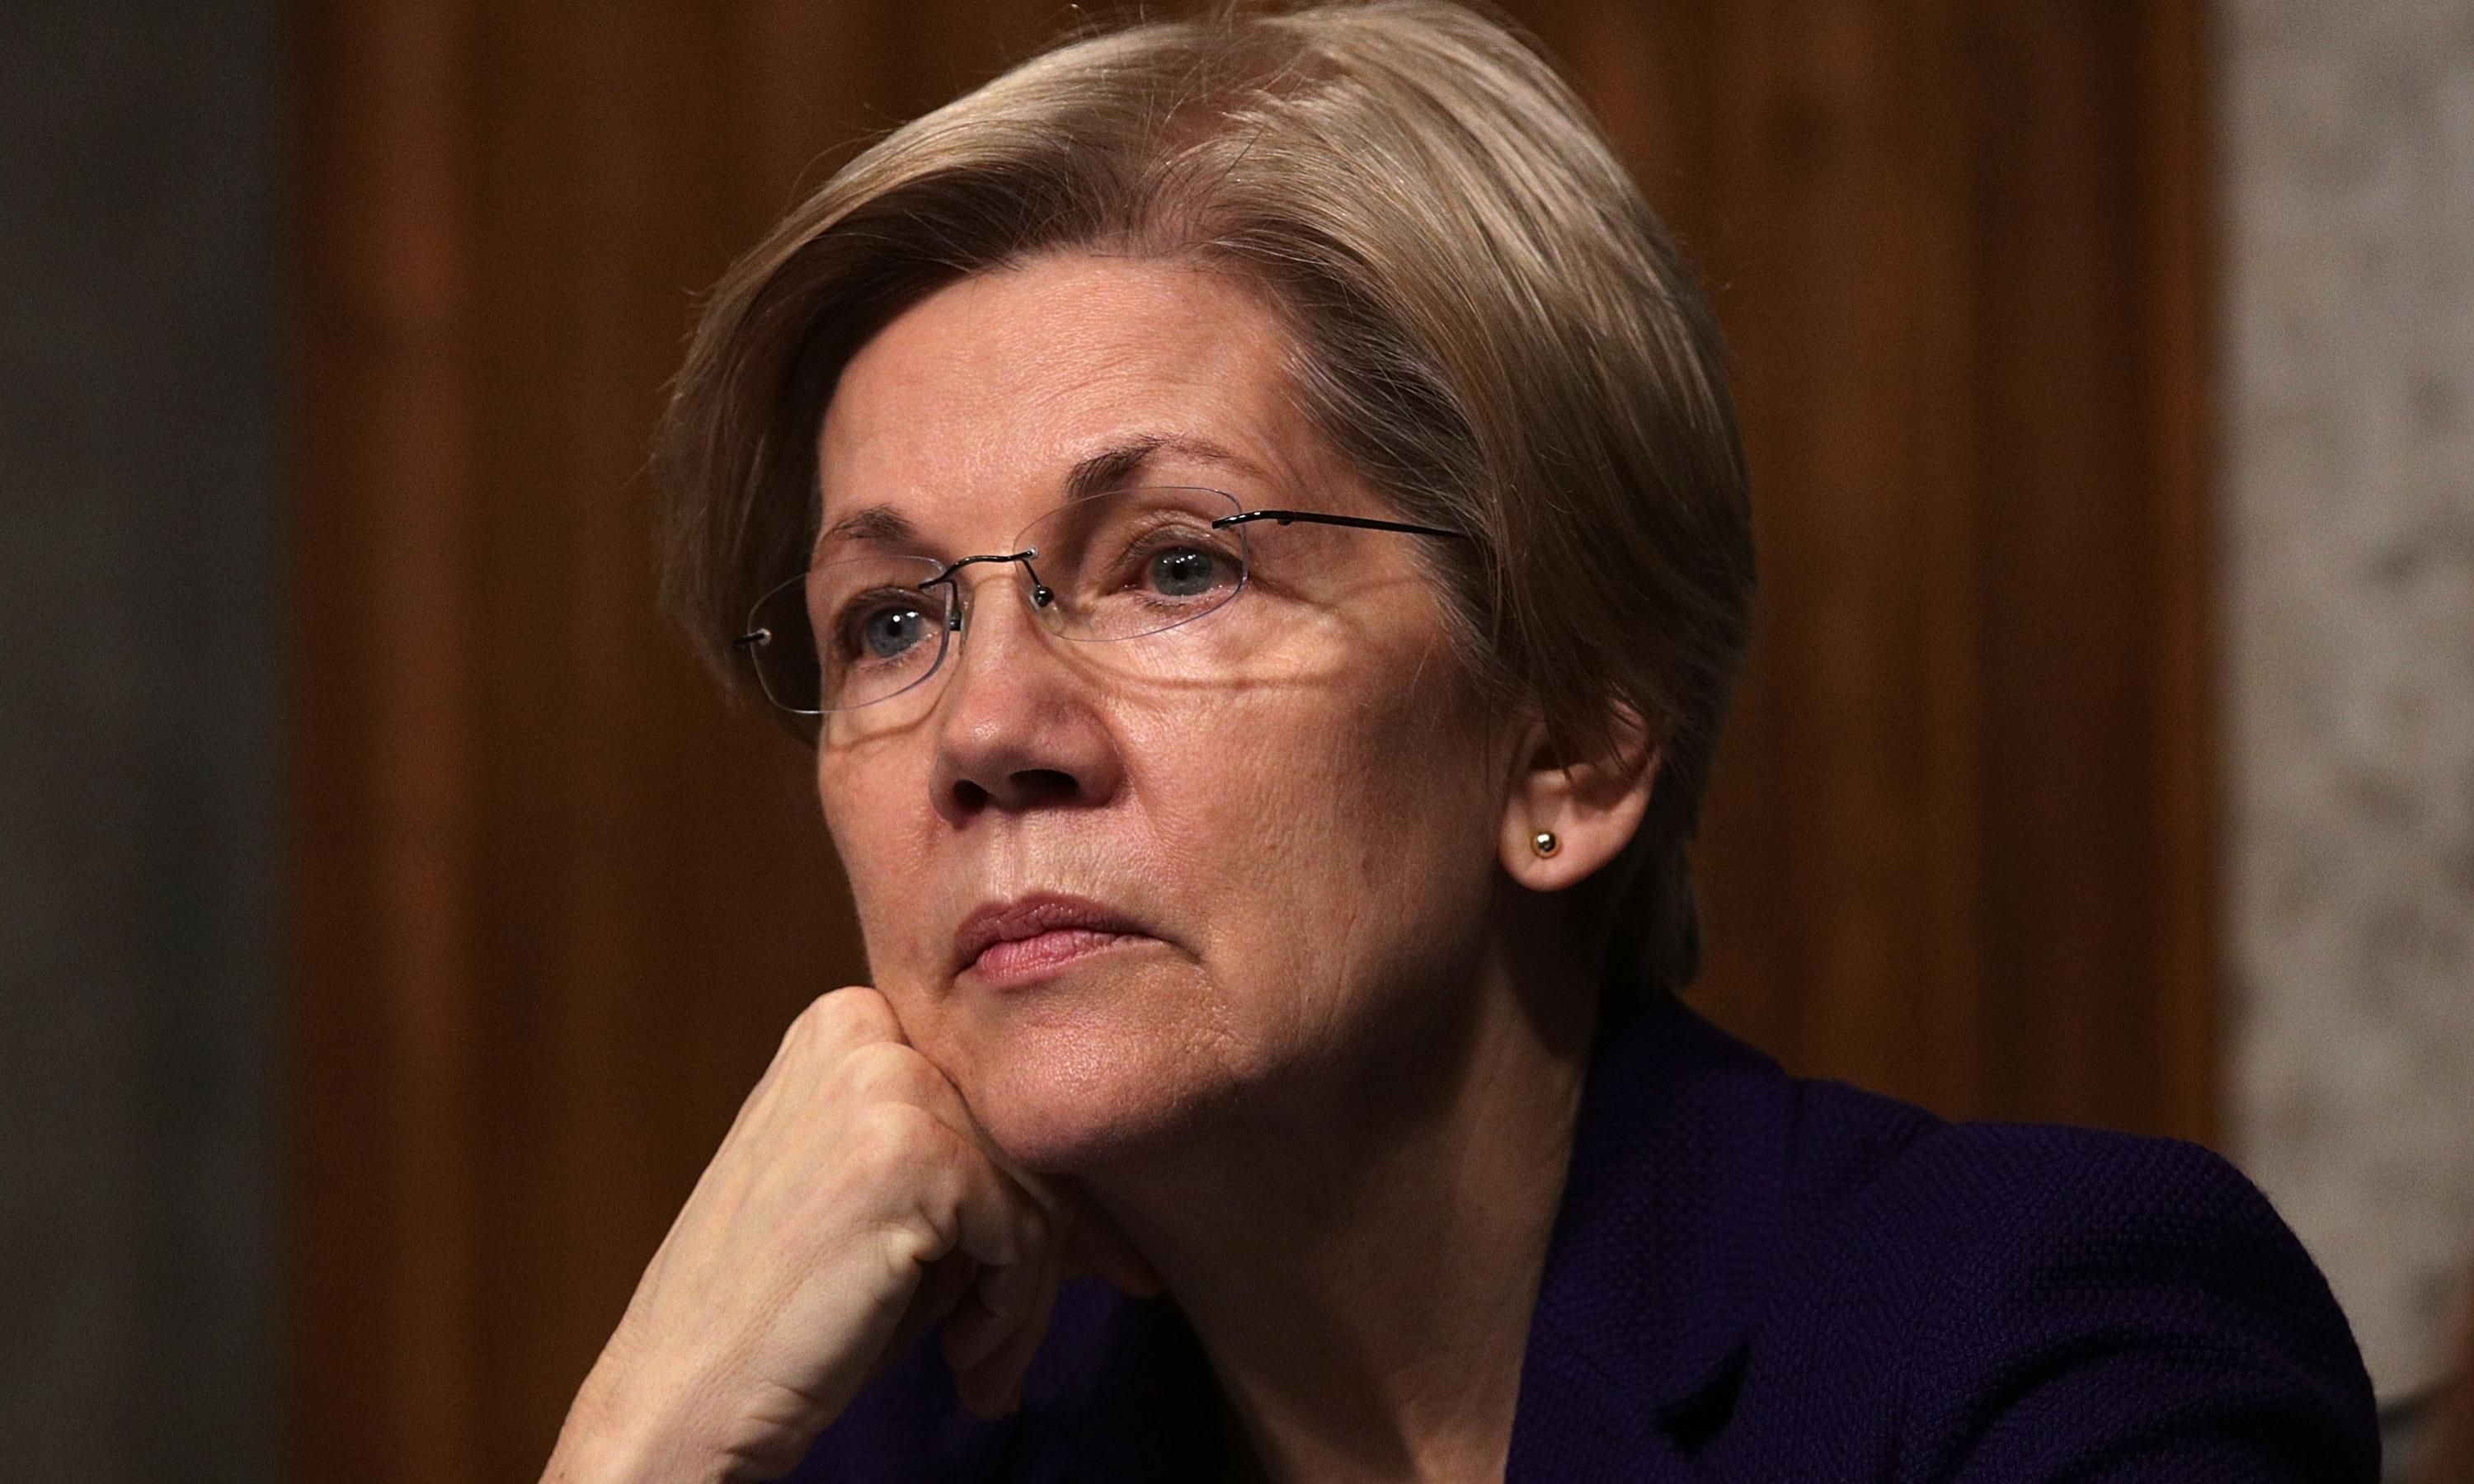 Elizabeth Warren calls out Obama and Democrats for losing way on economy